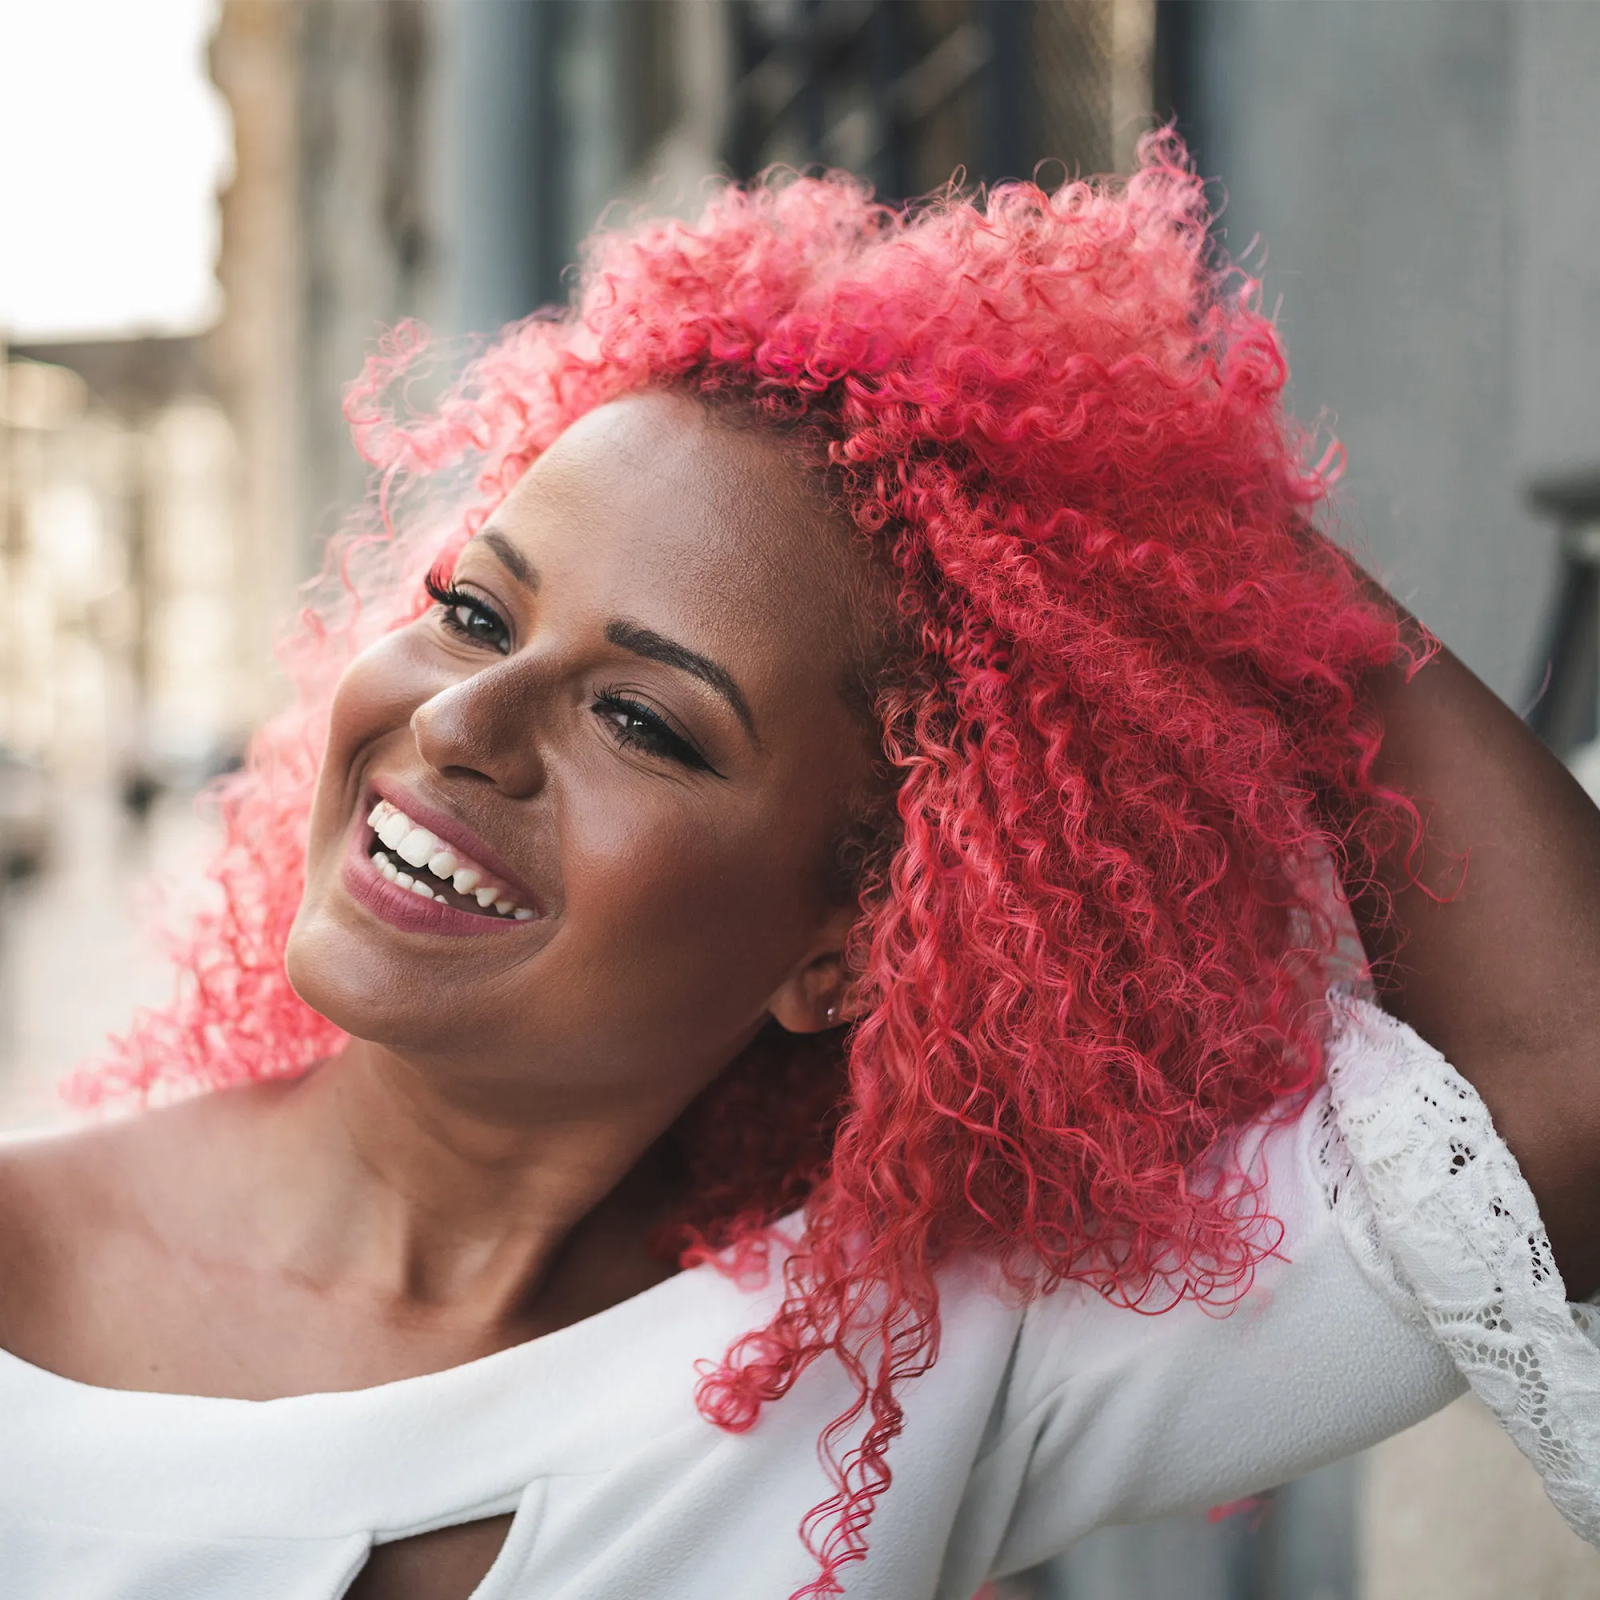 How To Make Your Wig A Little More natural With Spray Dye